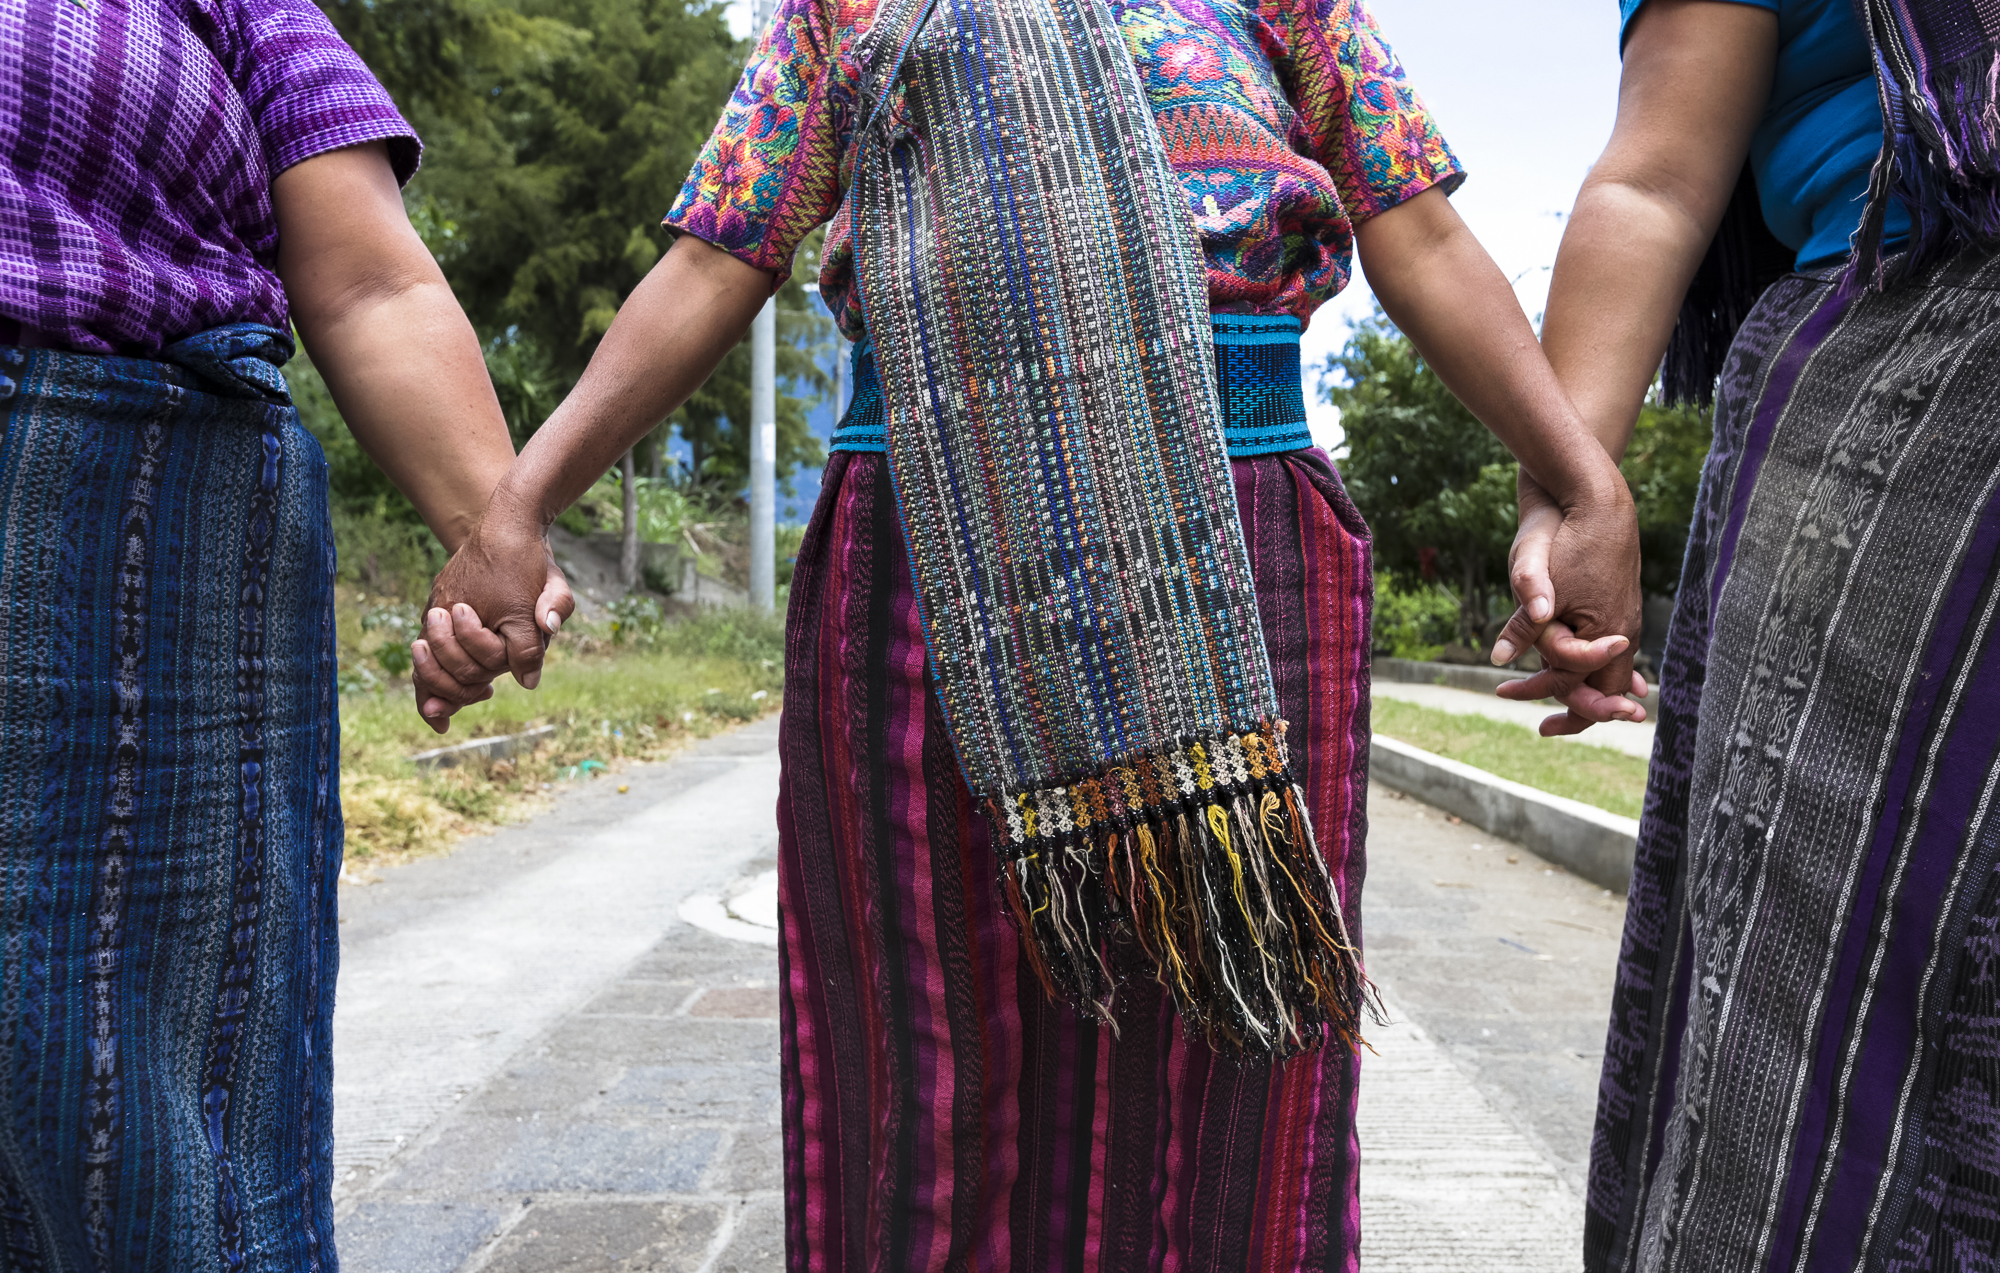 Women from Chukmuk, a close-knit community in Guatemala, gather hand and hand to show appreciation for one another on August 9, 2018. Chukmuk is a village populated by displaced survivors of the mudslides that took place on October 5, 2005, from the effects of Hurricane Stan.